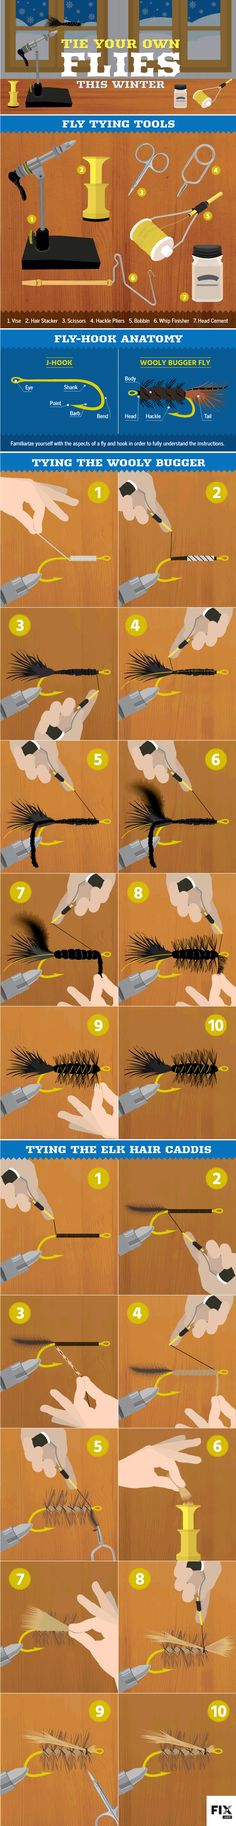 Fly Tying to Keep You Busy in the Offseason [INFOGRAPHIC] - Wide Open Spaces #FlyFishing